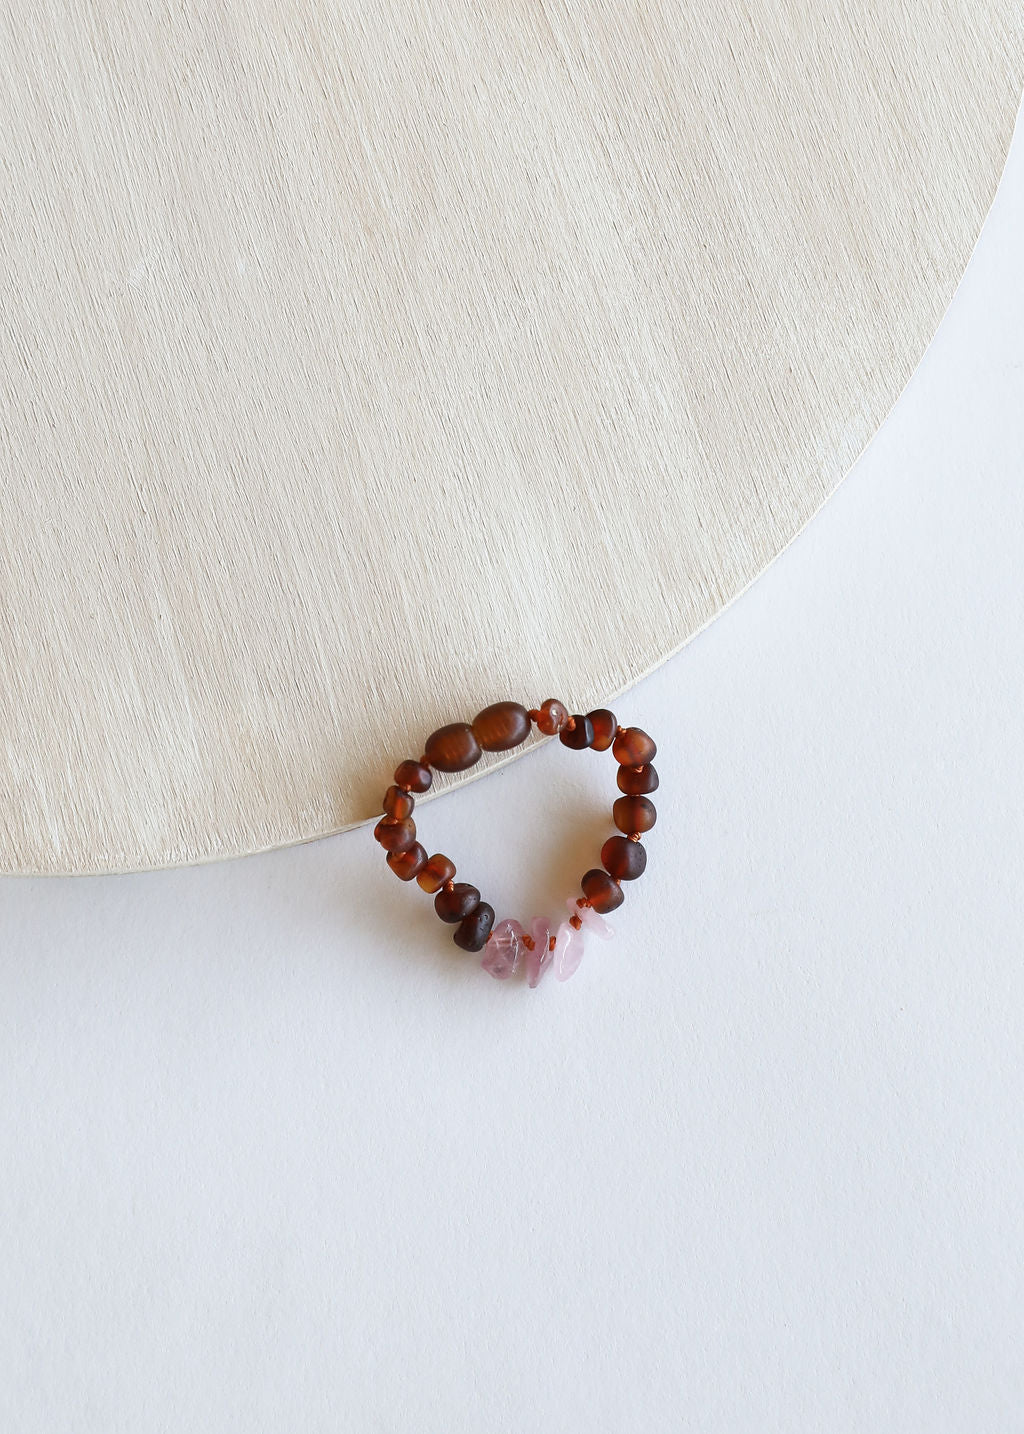 Raw Cognac Amber + Raw Rose Quartz || Anklets or Bracelet